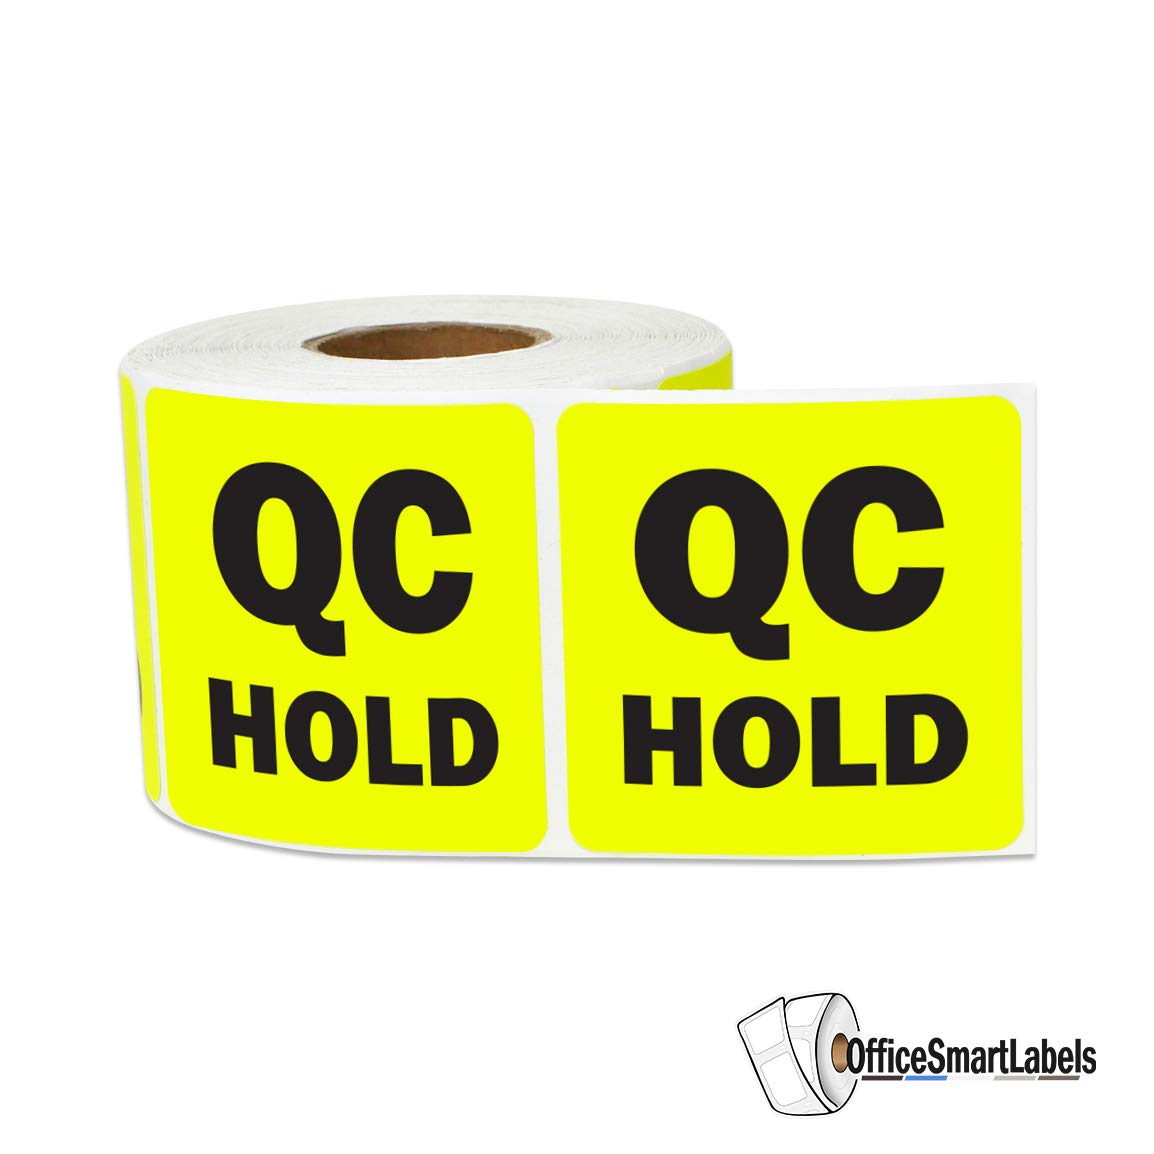 QC Rework Repair Stickers for Quality Control Inventory Warehouse 2 x 2 inch, Purple - 2 Rolls SOJITEK A-OFSSPS764-PUR-002 600 Labels